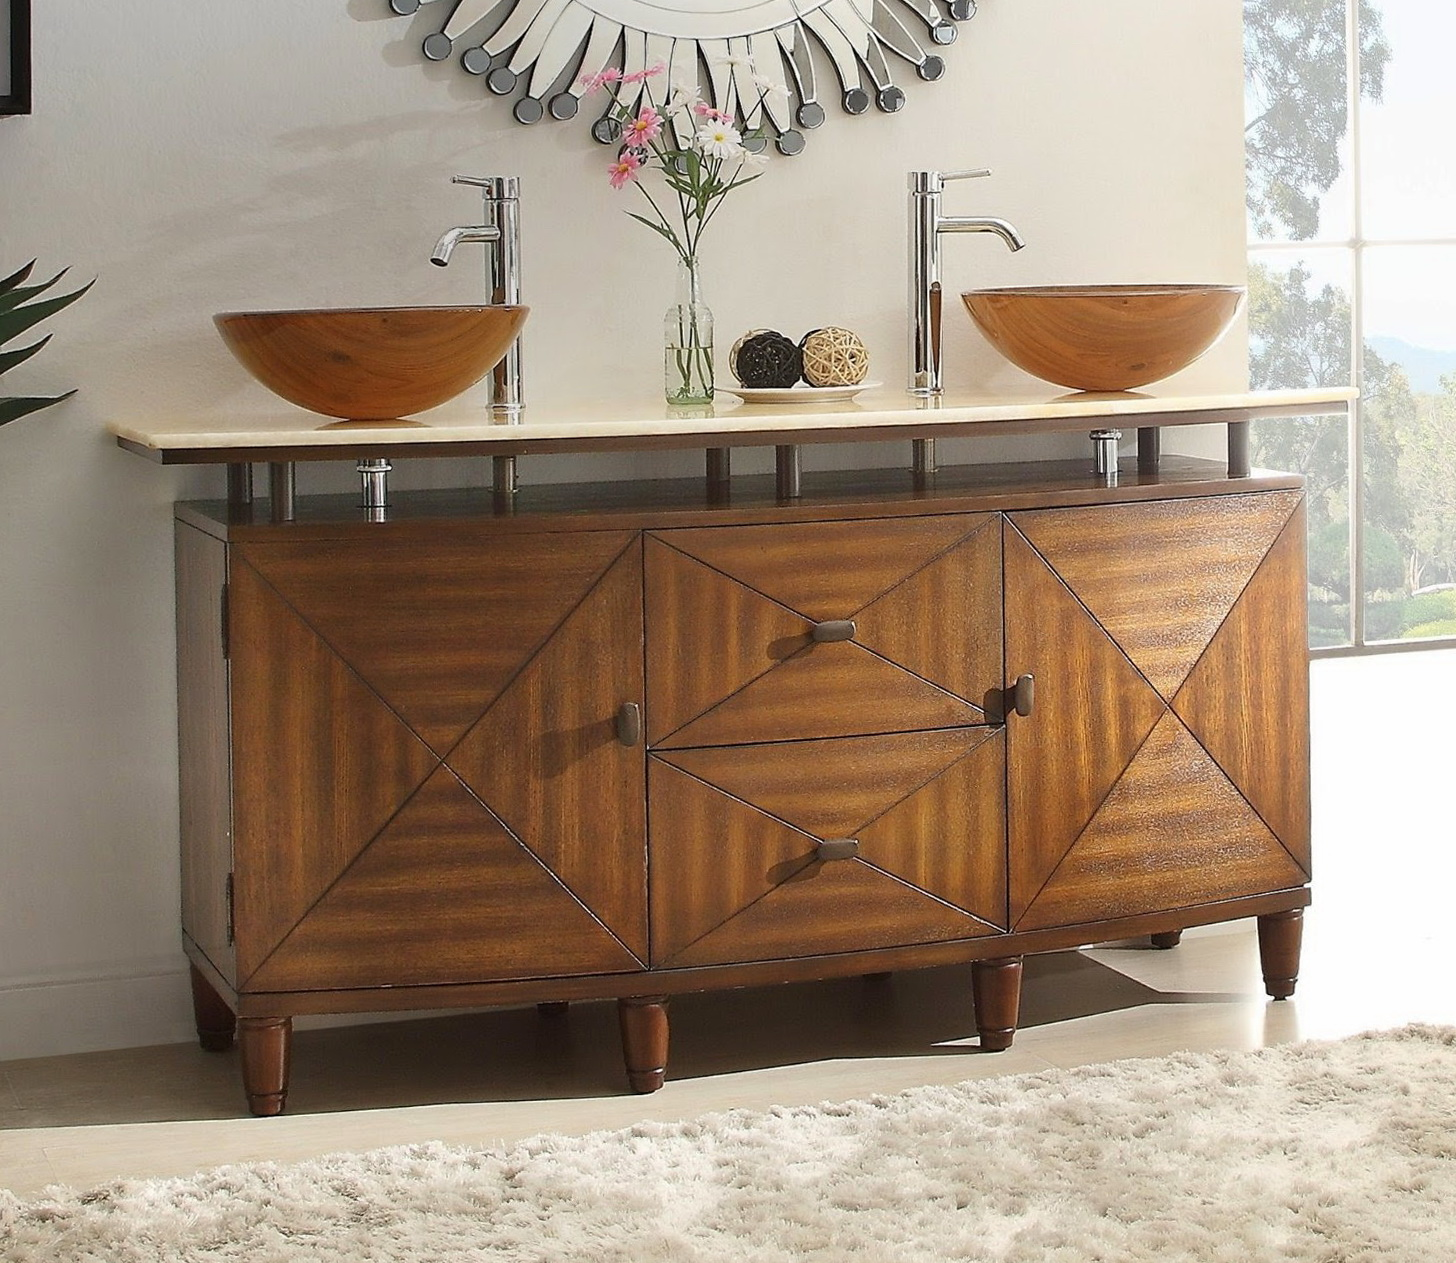 Double Sink Vanity Home Depot. Double Sink Vanity Home Depot   Home Design Ideas